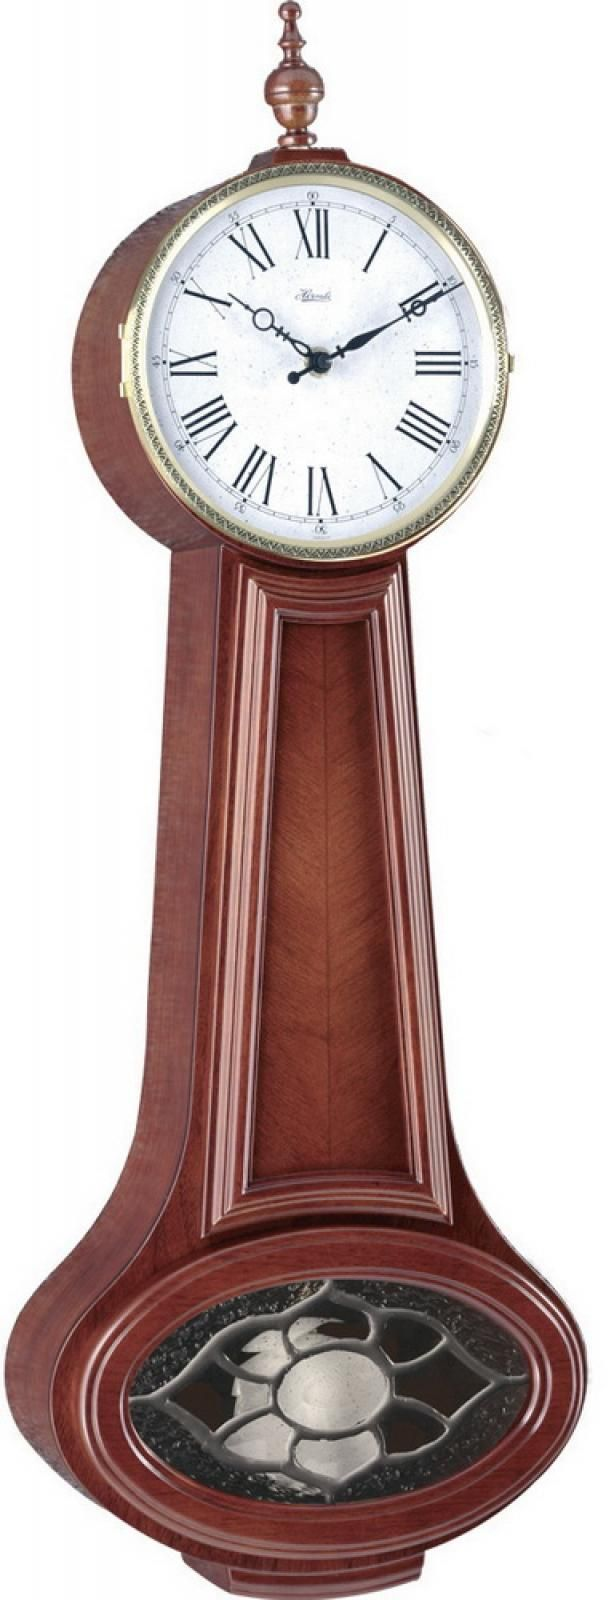 Best 25 chiming wall clocks ideas on pinterest floor and clockway german hermle black forest chiming wall clock quartz jhe2172 amipublicfo Images